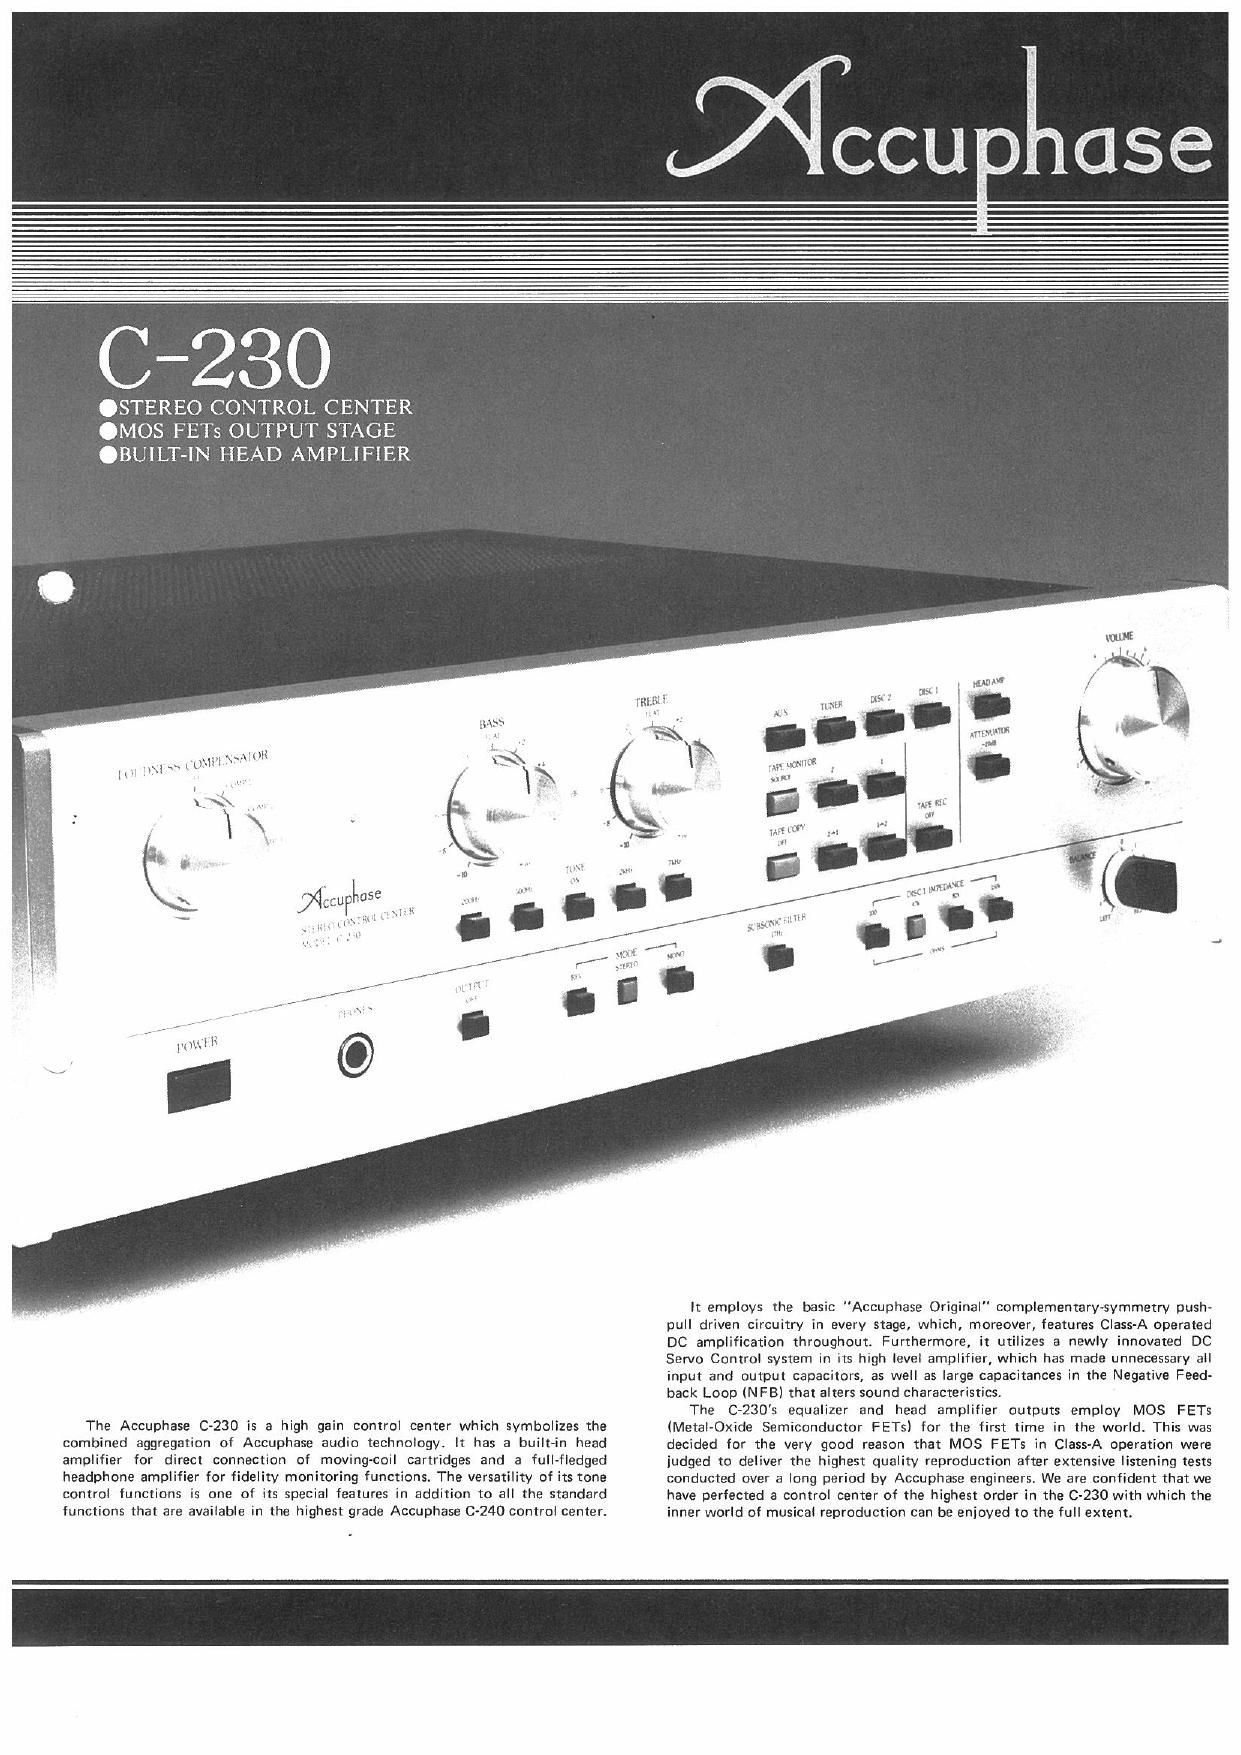 Accuphase C 230 Brochure